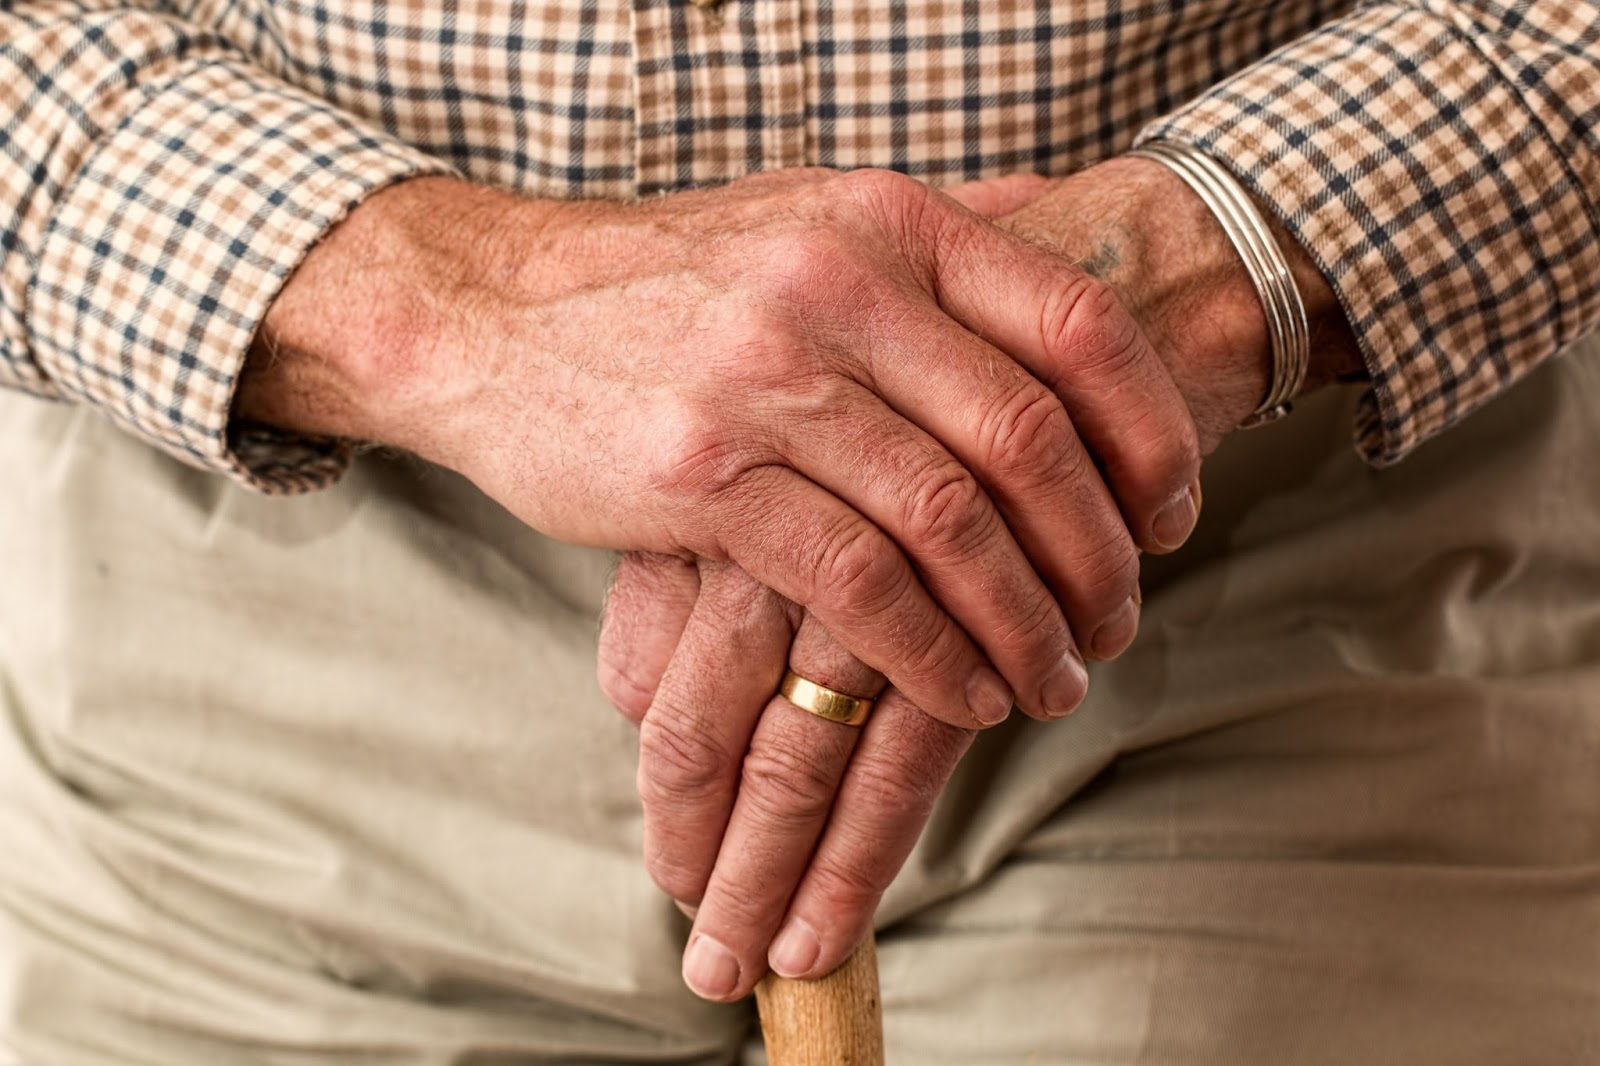 Elderly can treat their minor and major age-related diseases using CBD